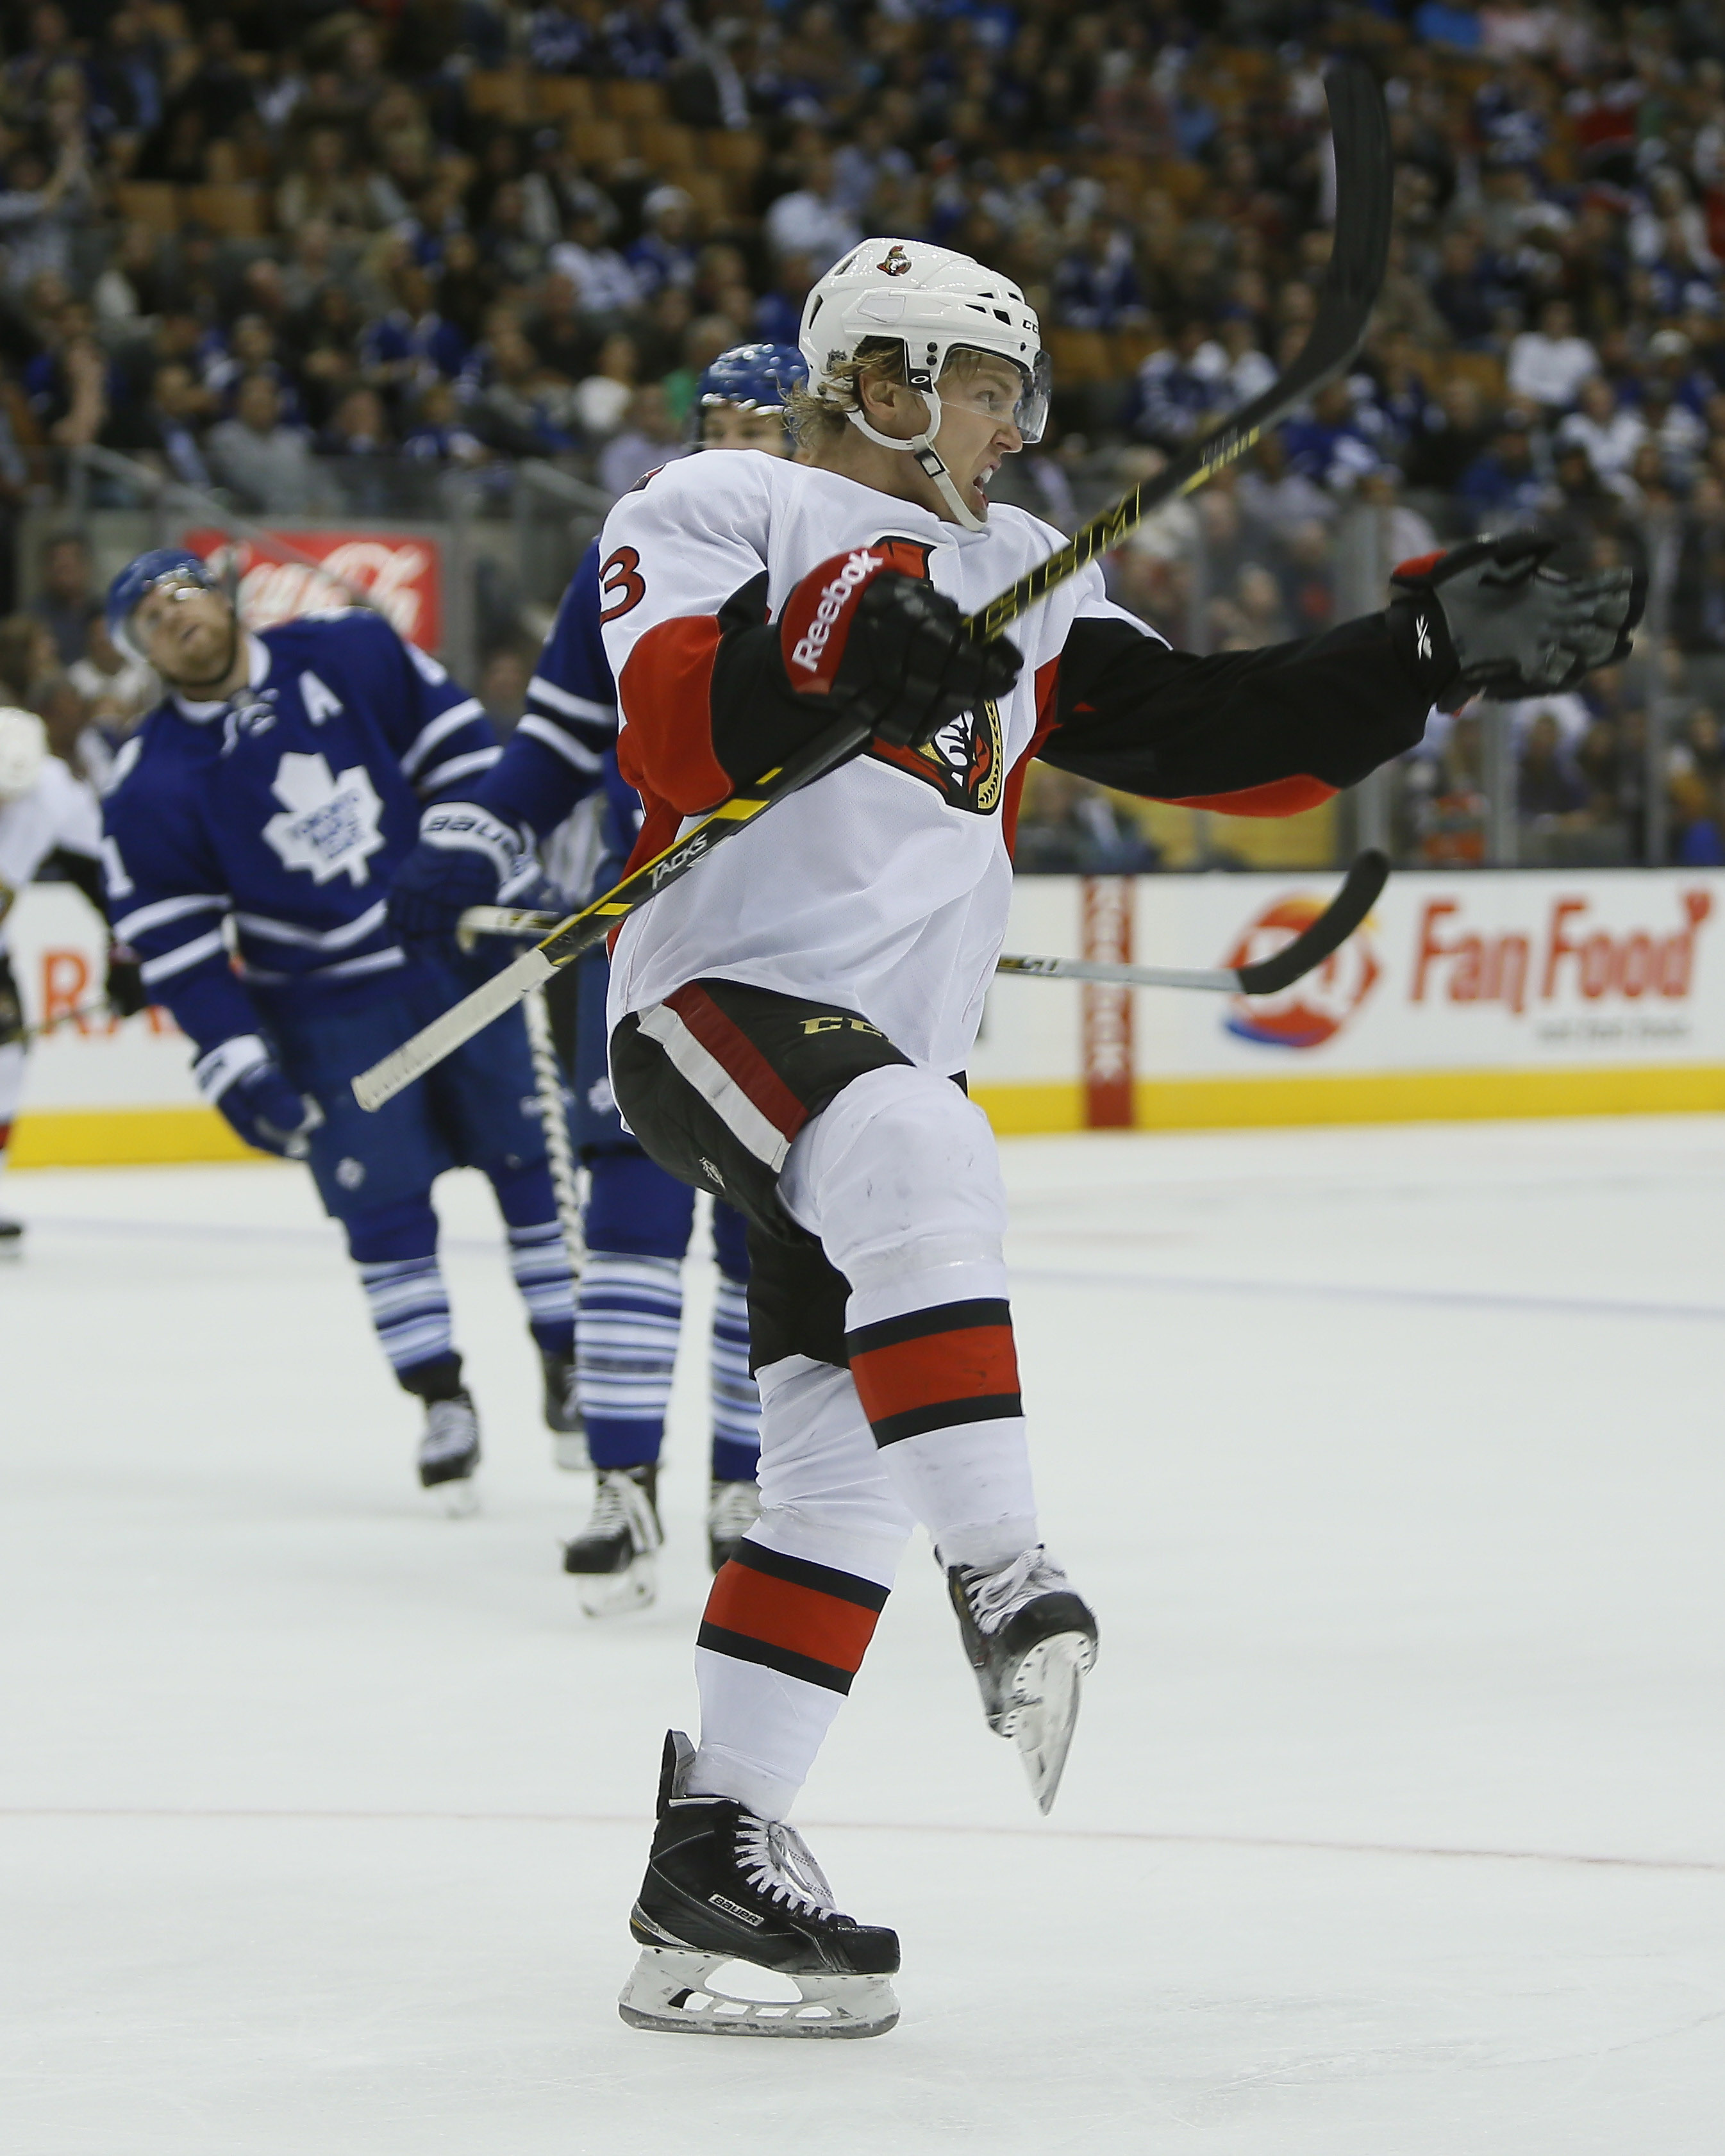 Dzingel's celly game could use a little work